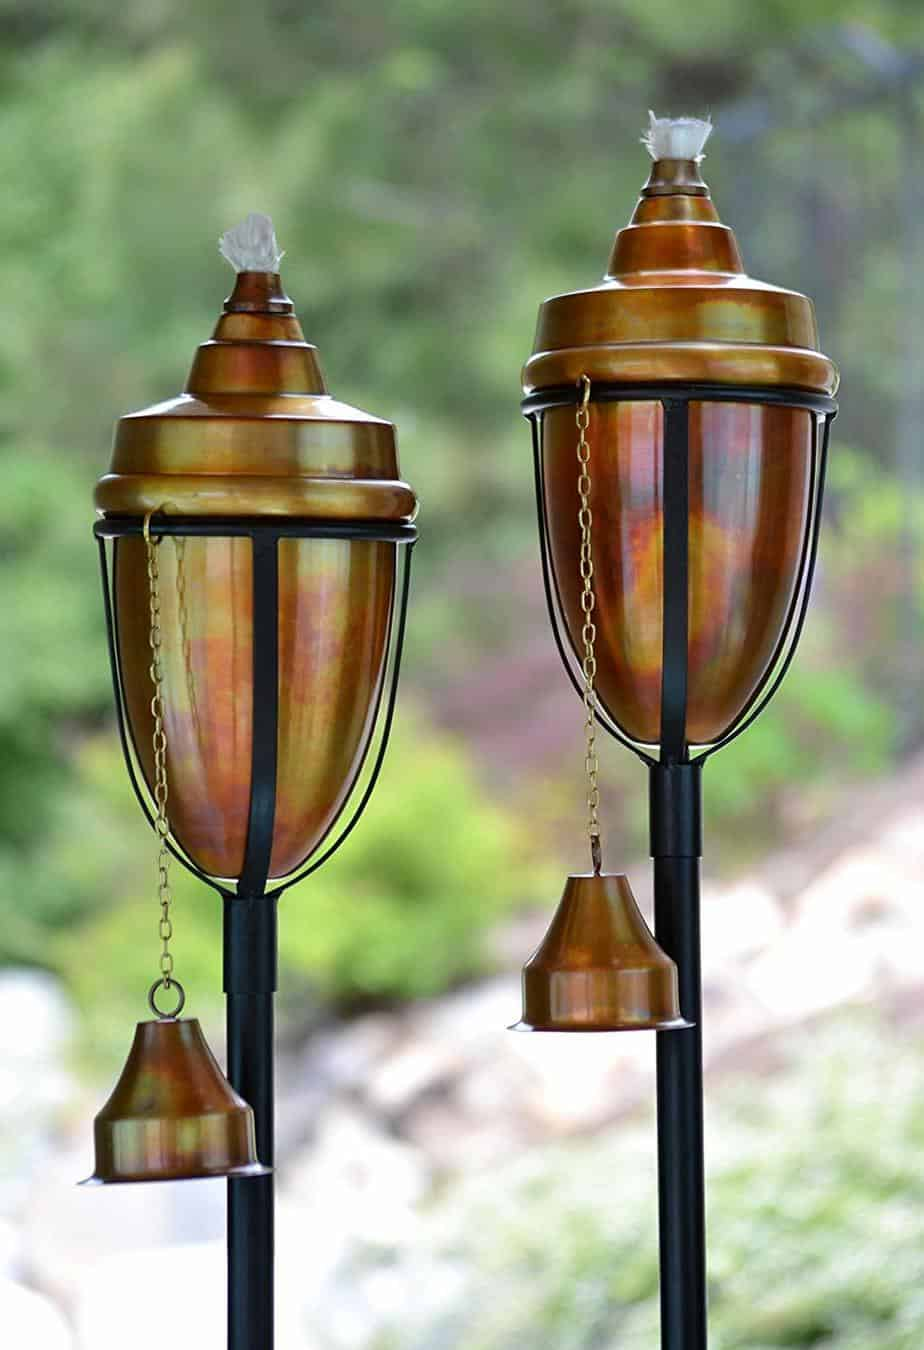 Best Tiki Torches for Mosquito Repellents | Insect Hobbyist